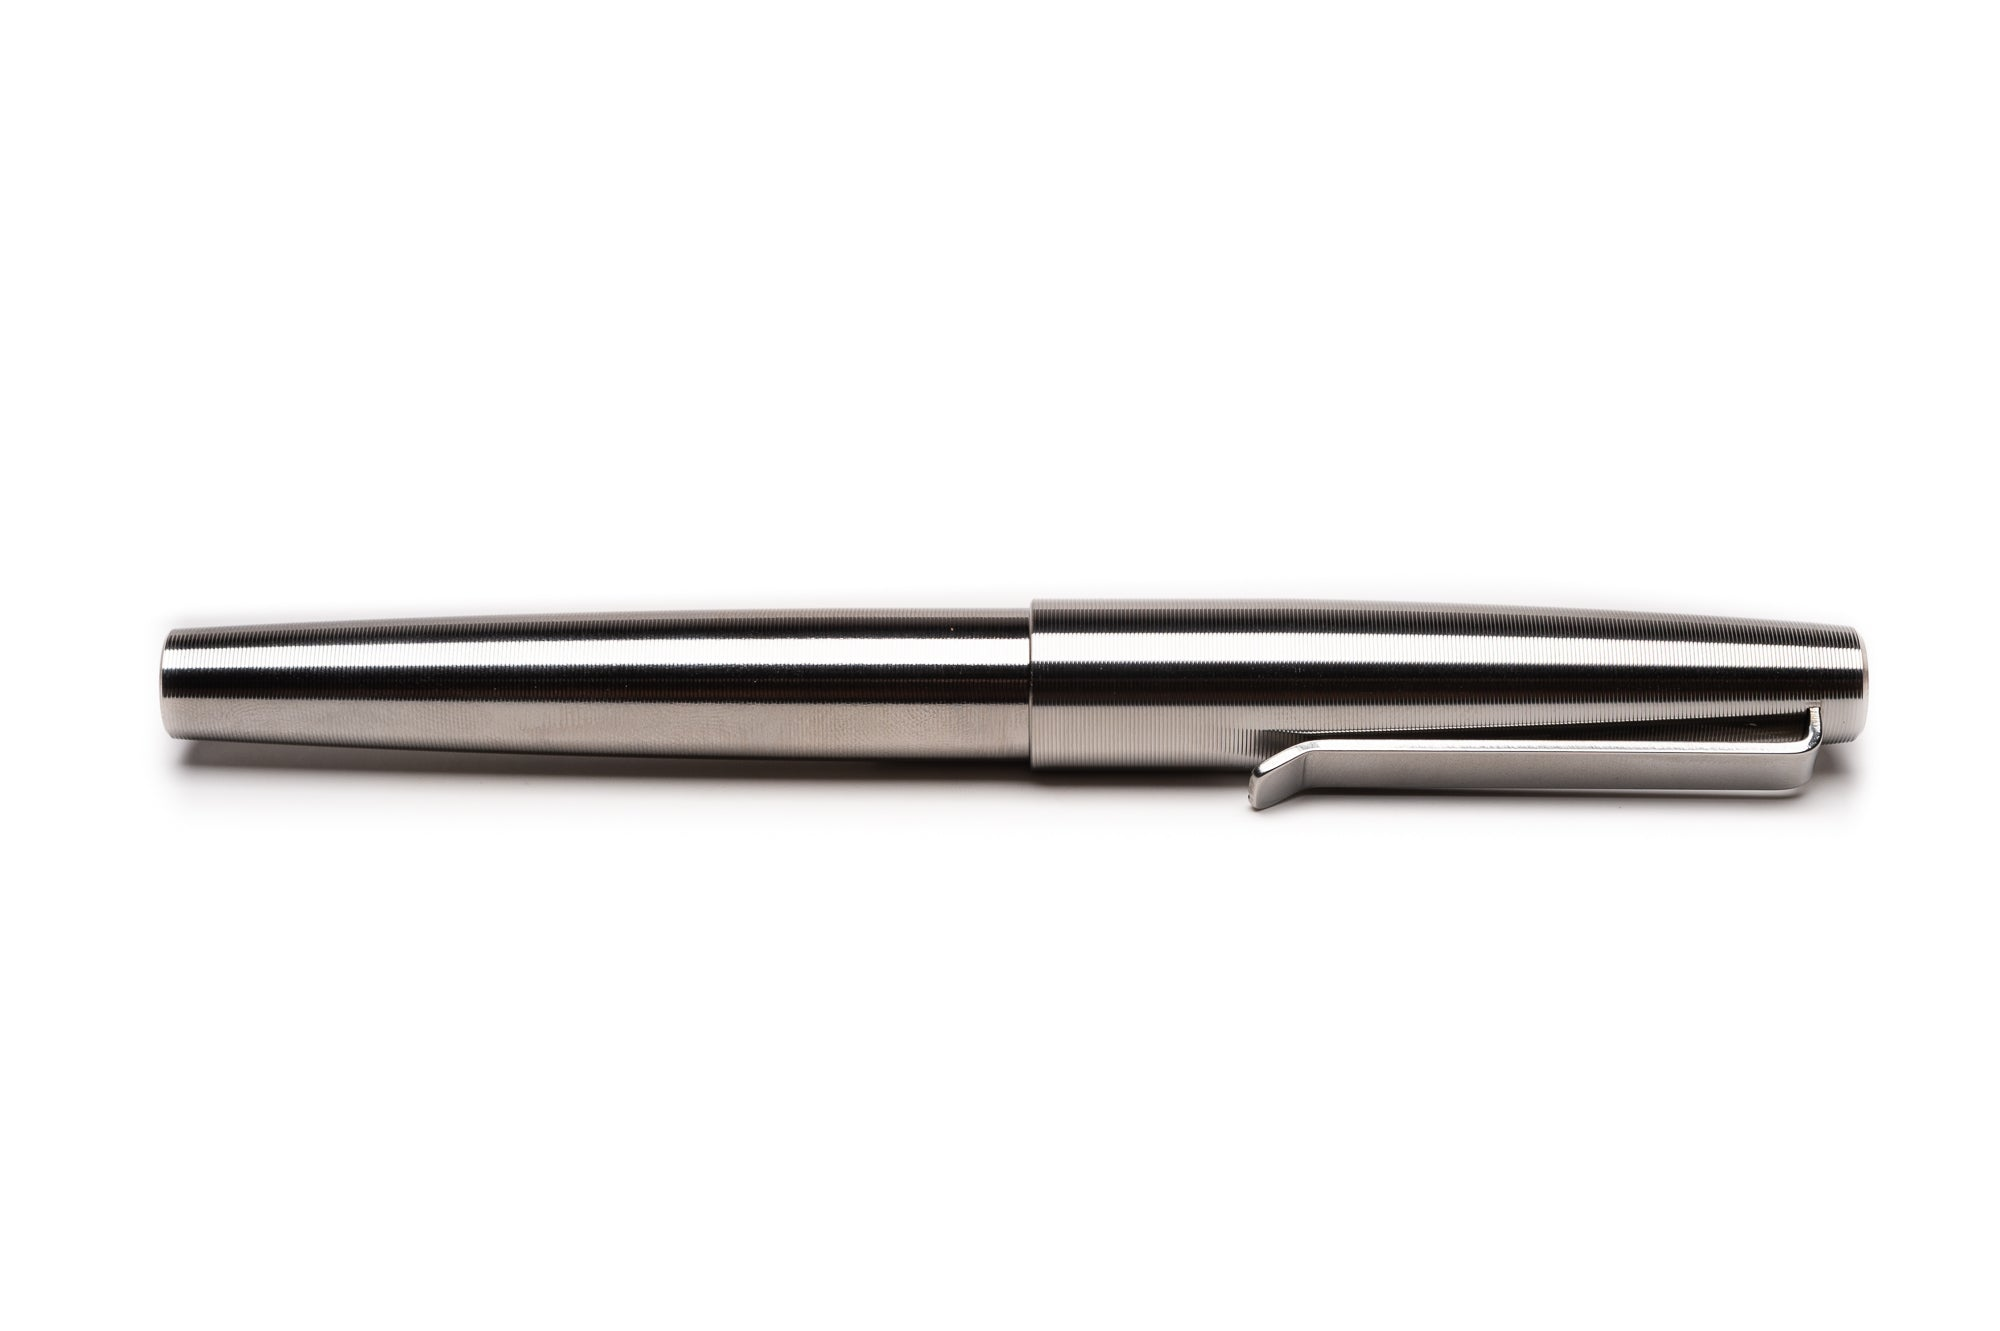 Titanium Pen by Tactile Turn